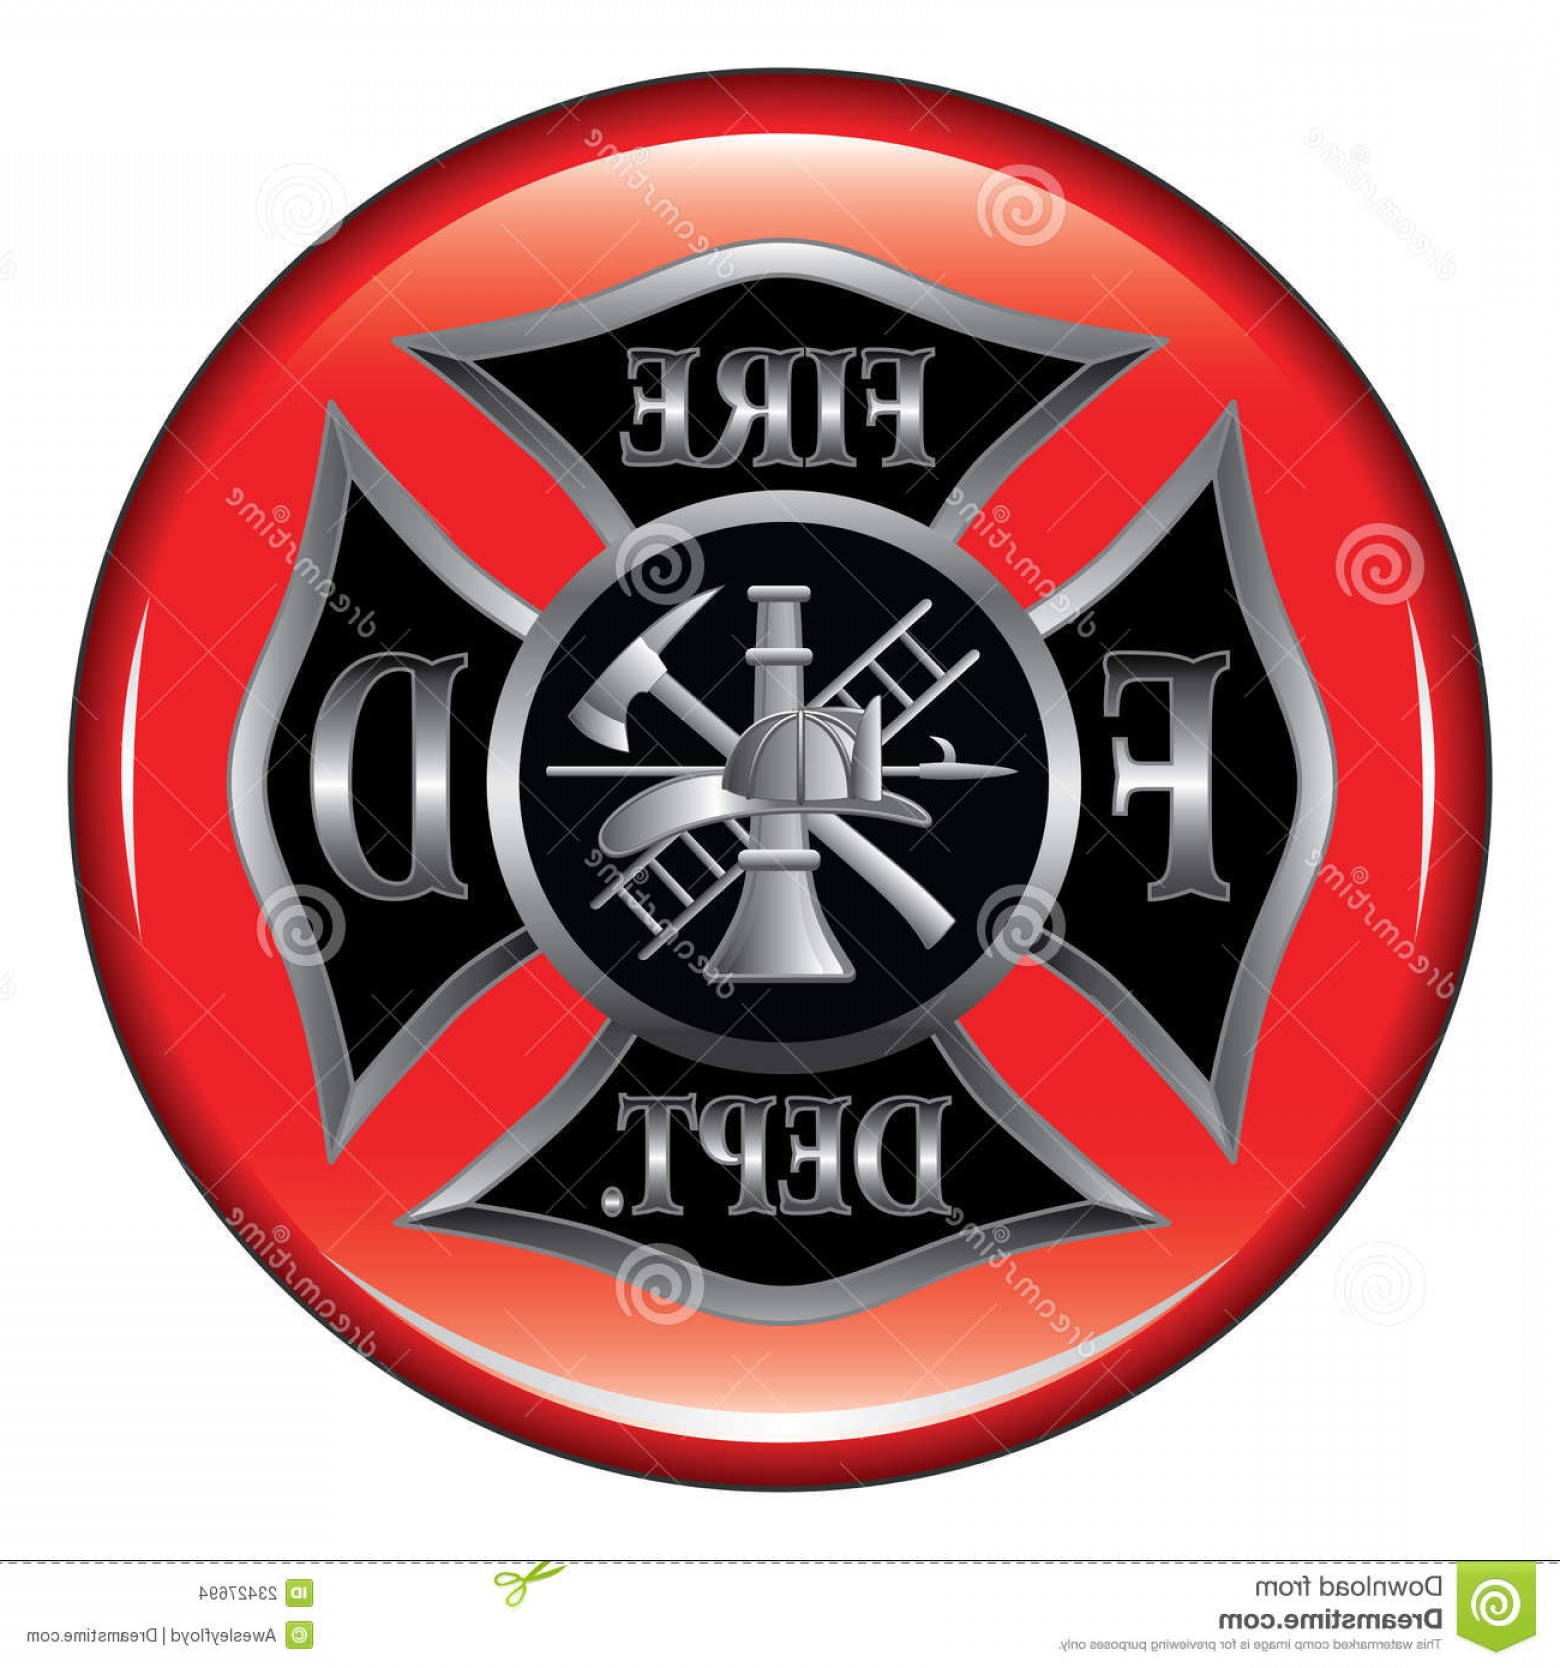 Fire Maltese Vector: Stock Images Fire Department Maltese Cross Button Image